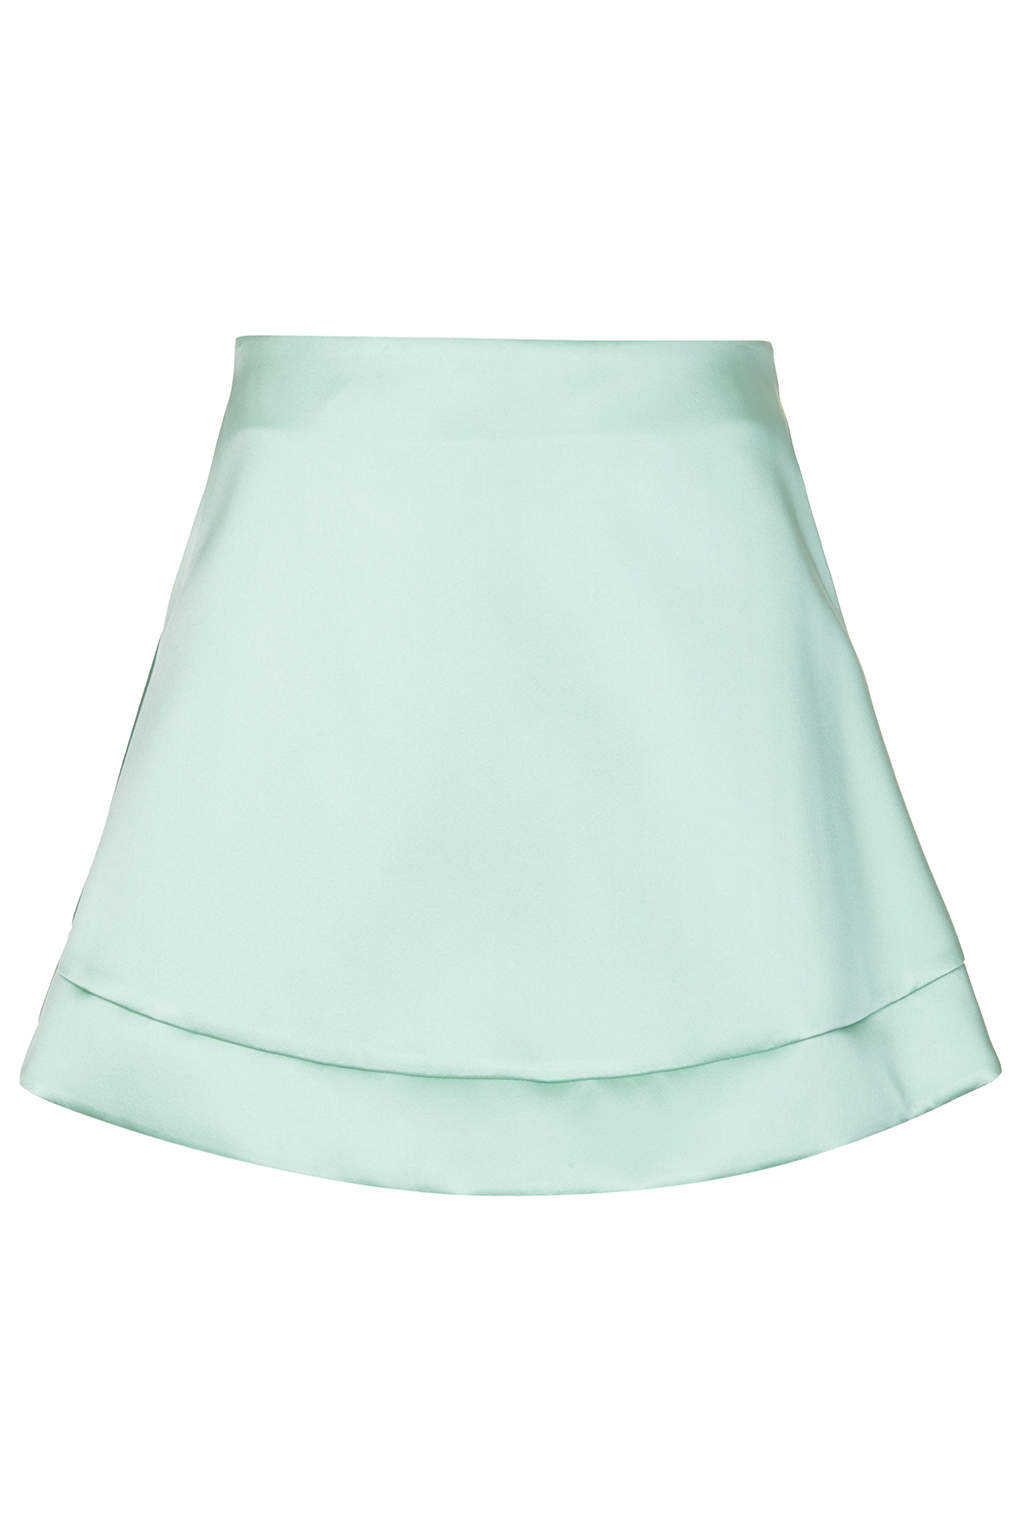 Edition Mint Satin A-line Skirt - Clothing